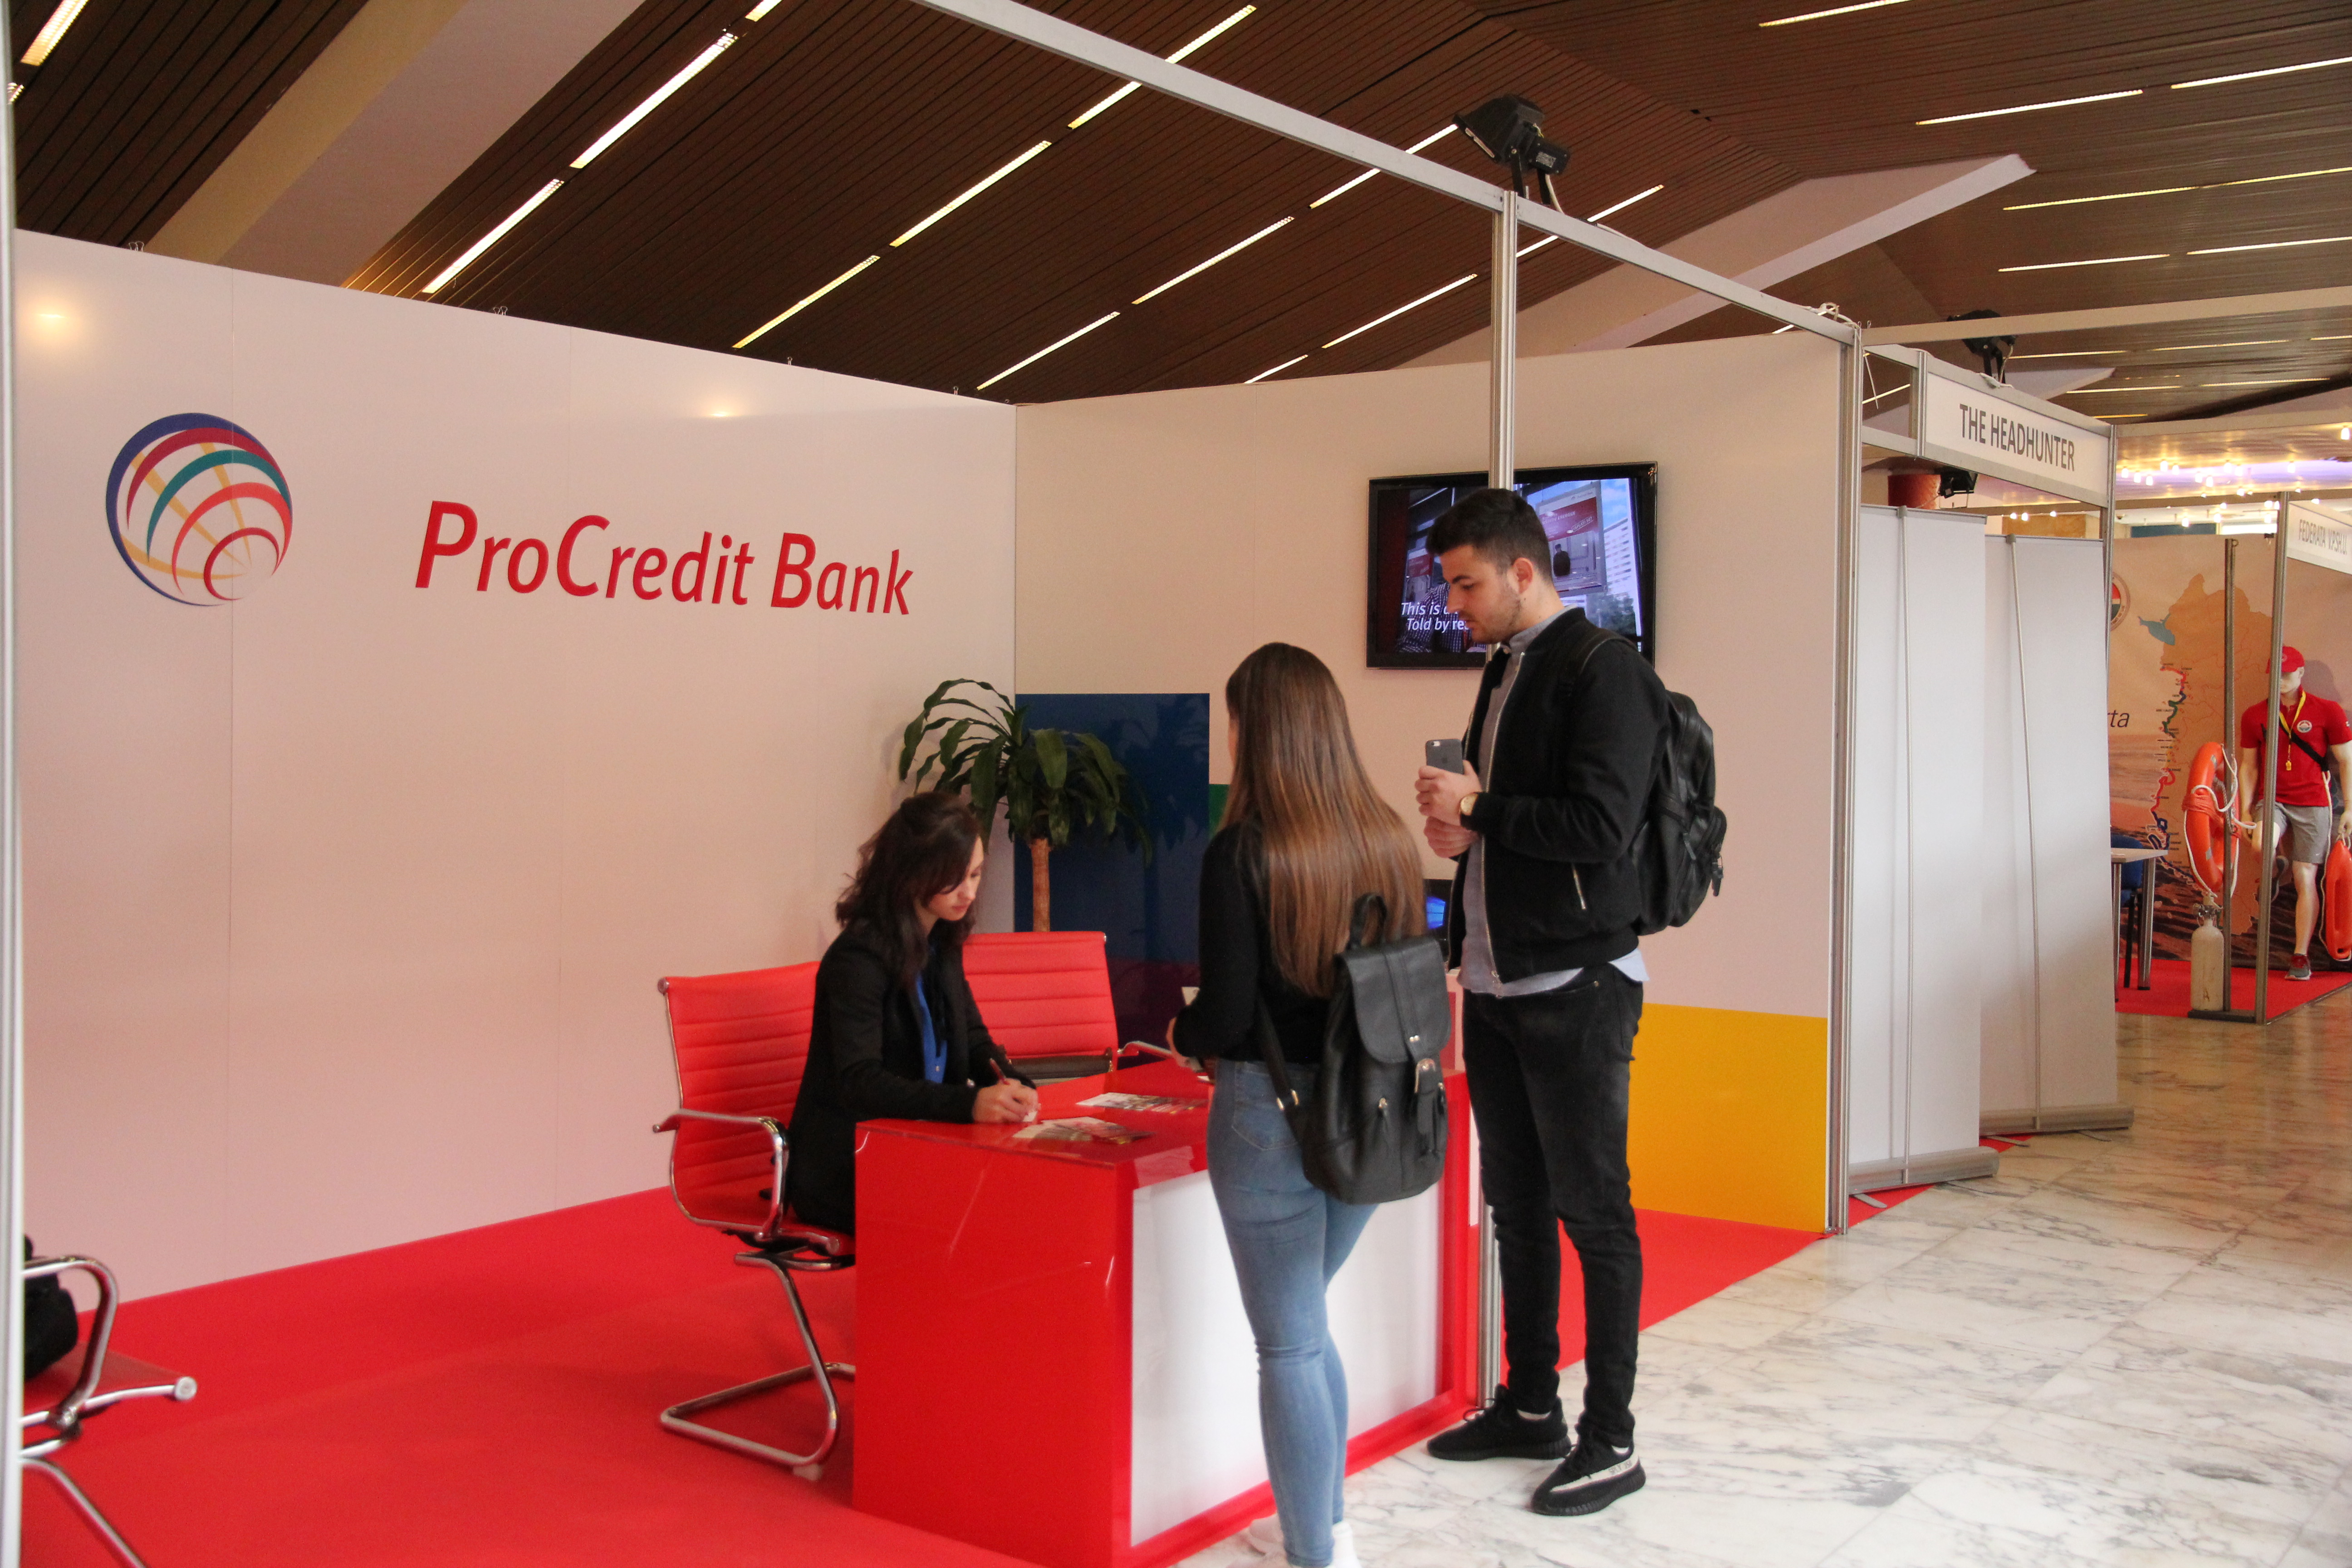 ProCredit Bank